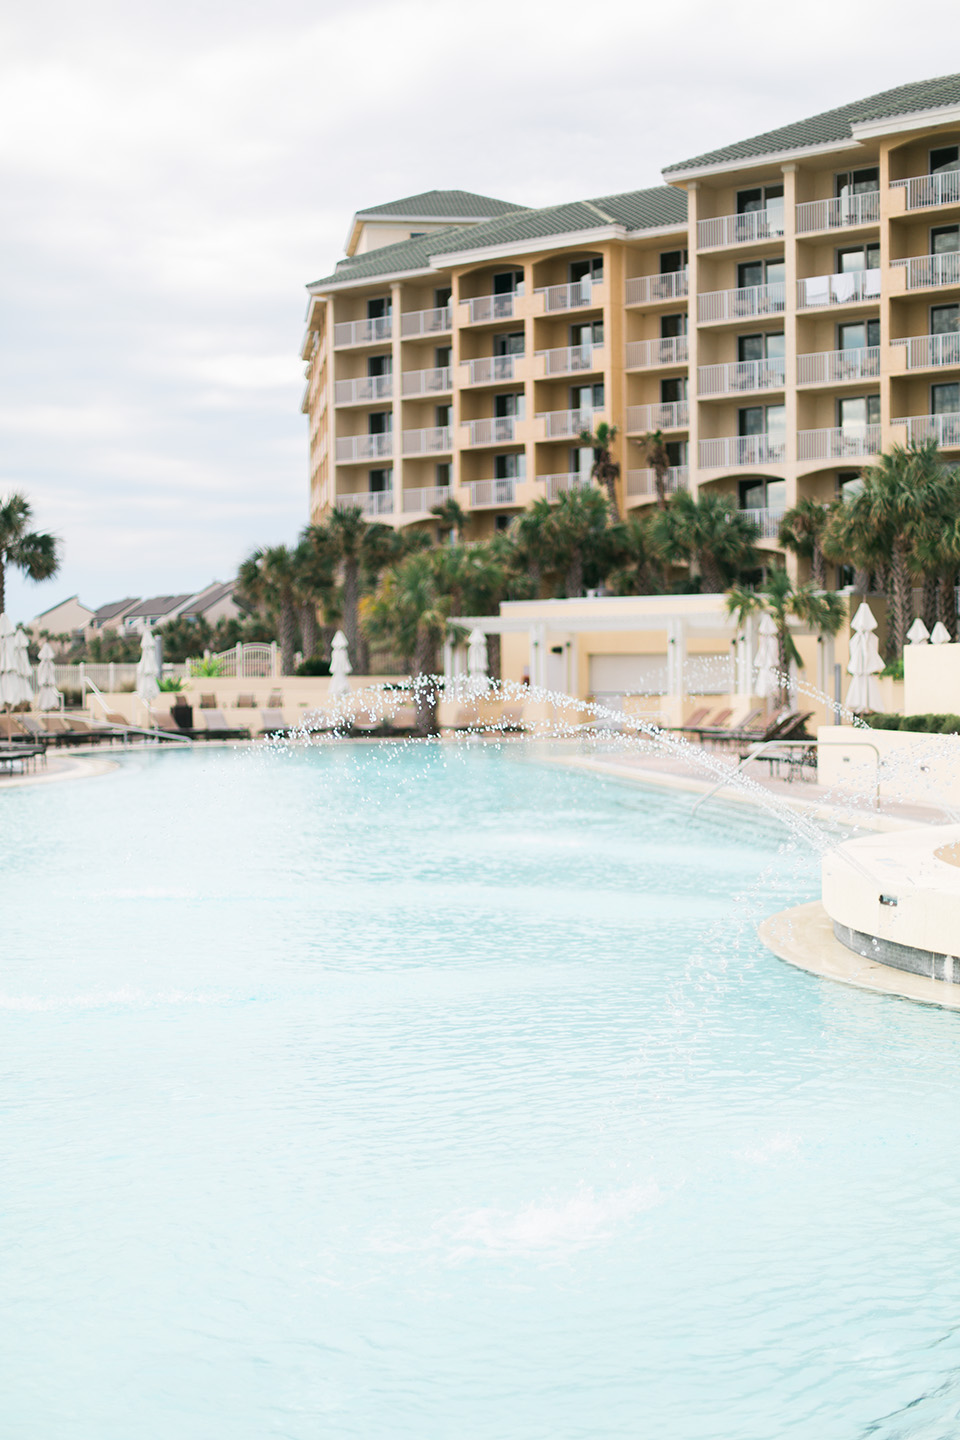 Picture of the pool deck at the Omni Amelia Island Plantation Resort.